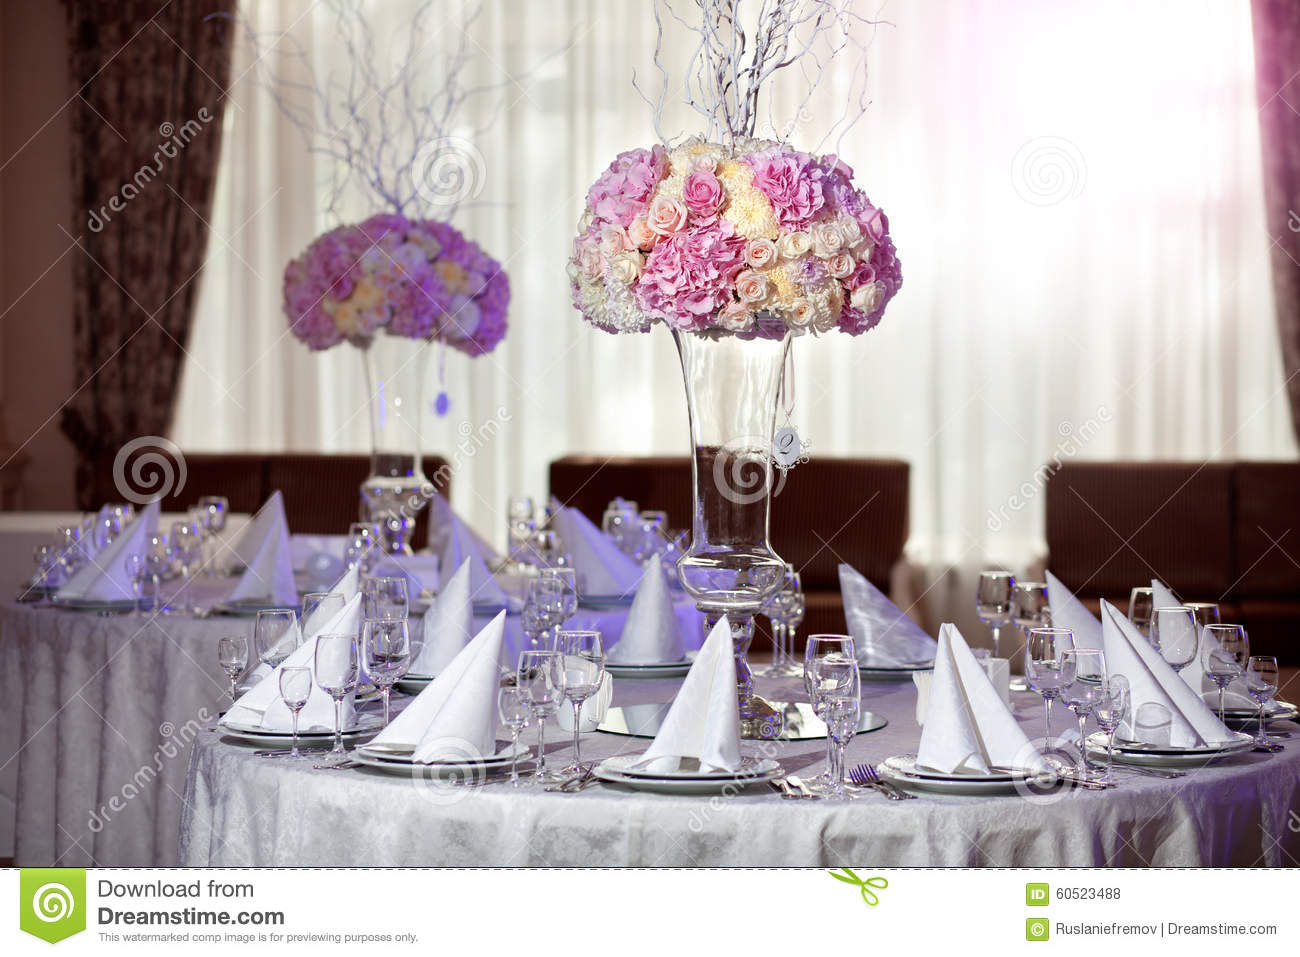 Beautiful Flowers On Table In Wedding Day Luxury Holiday Background